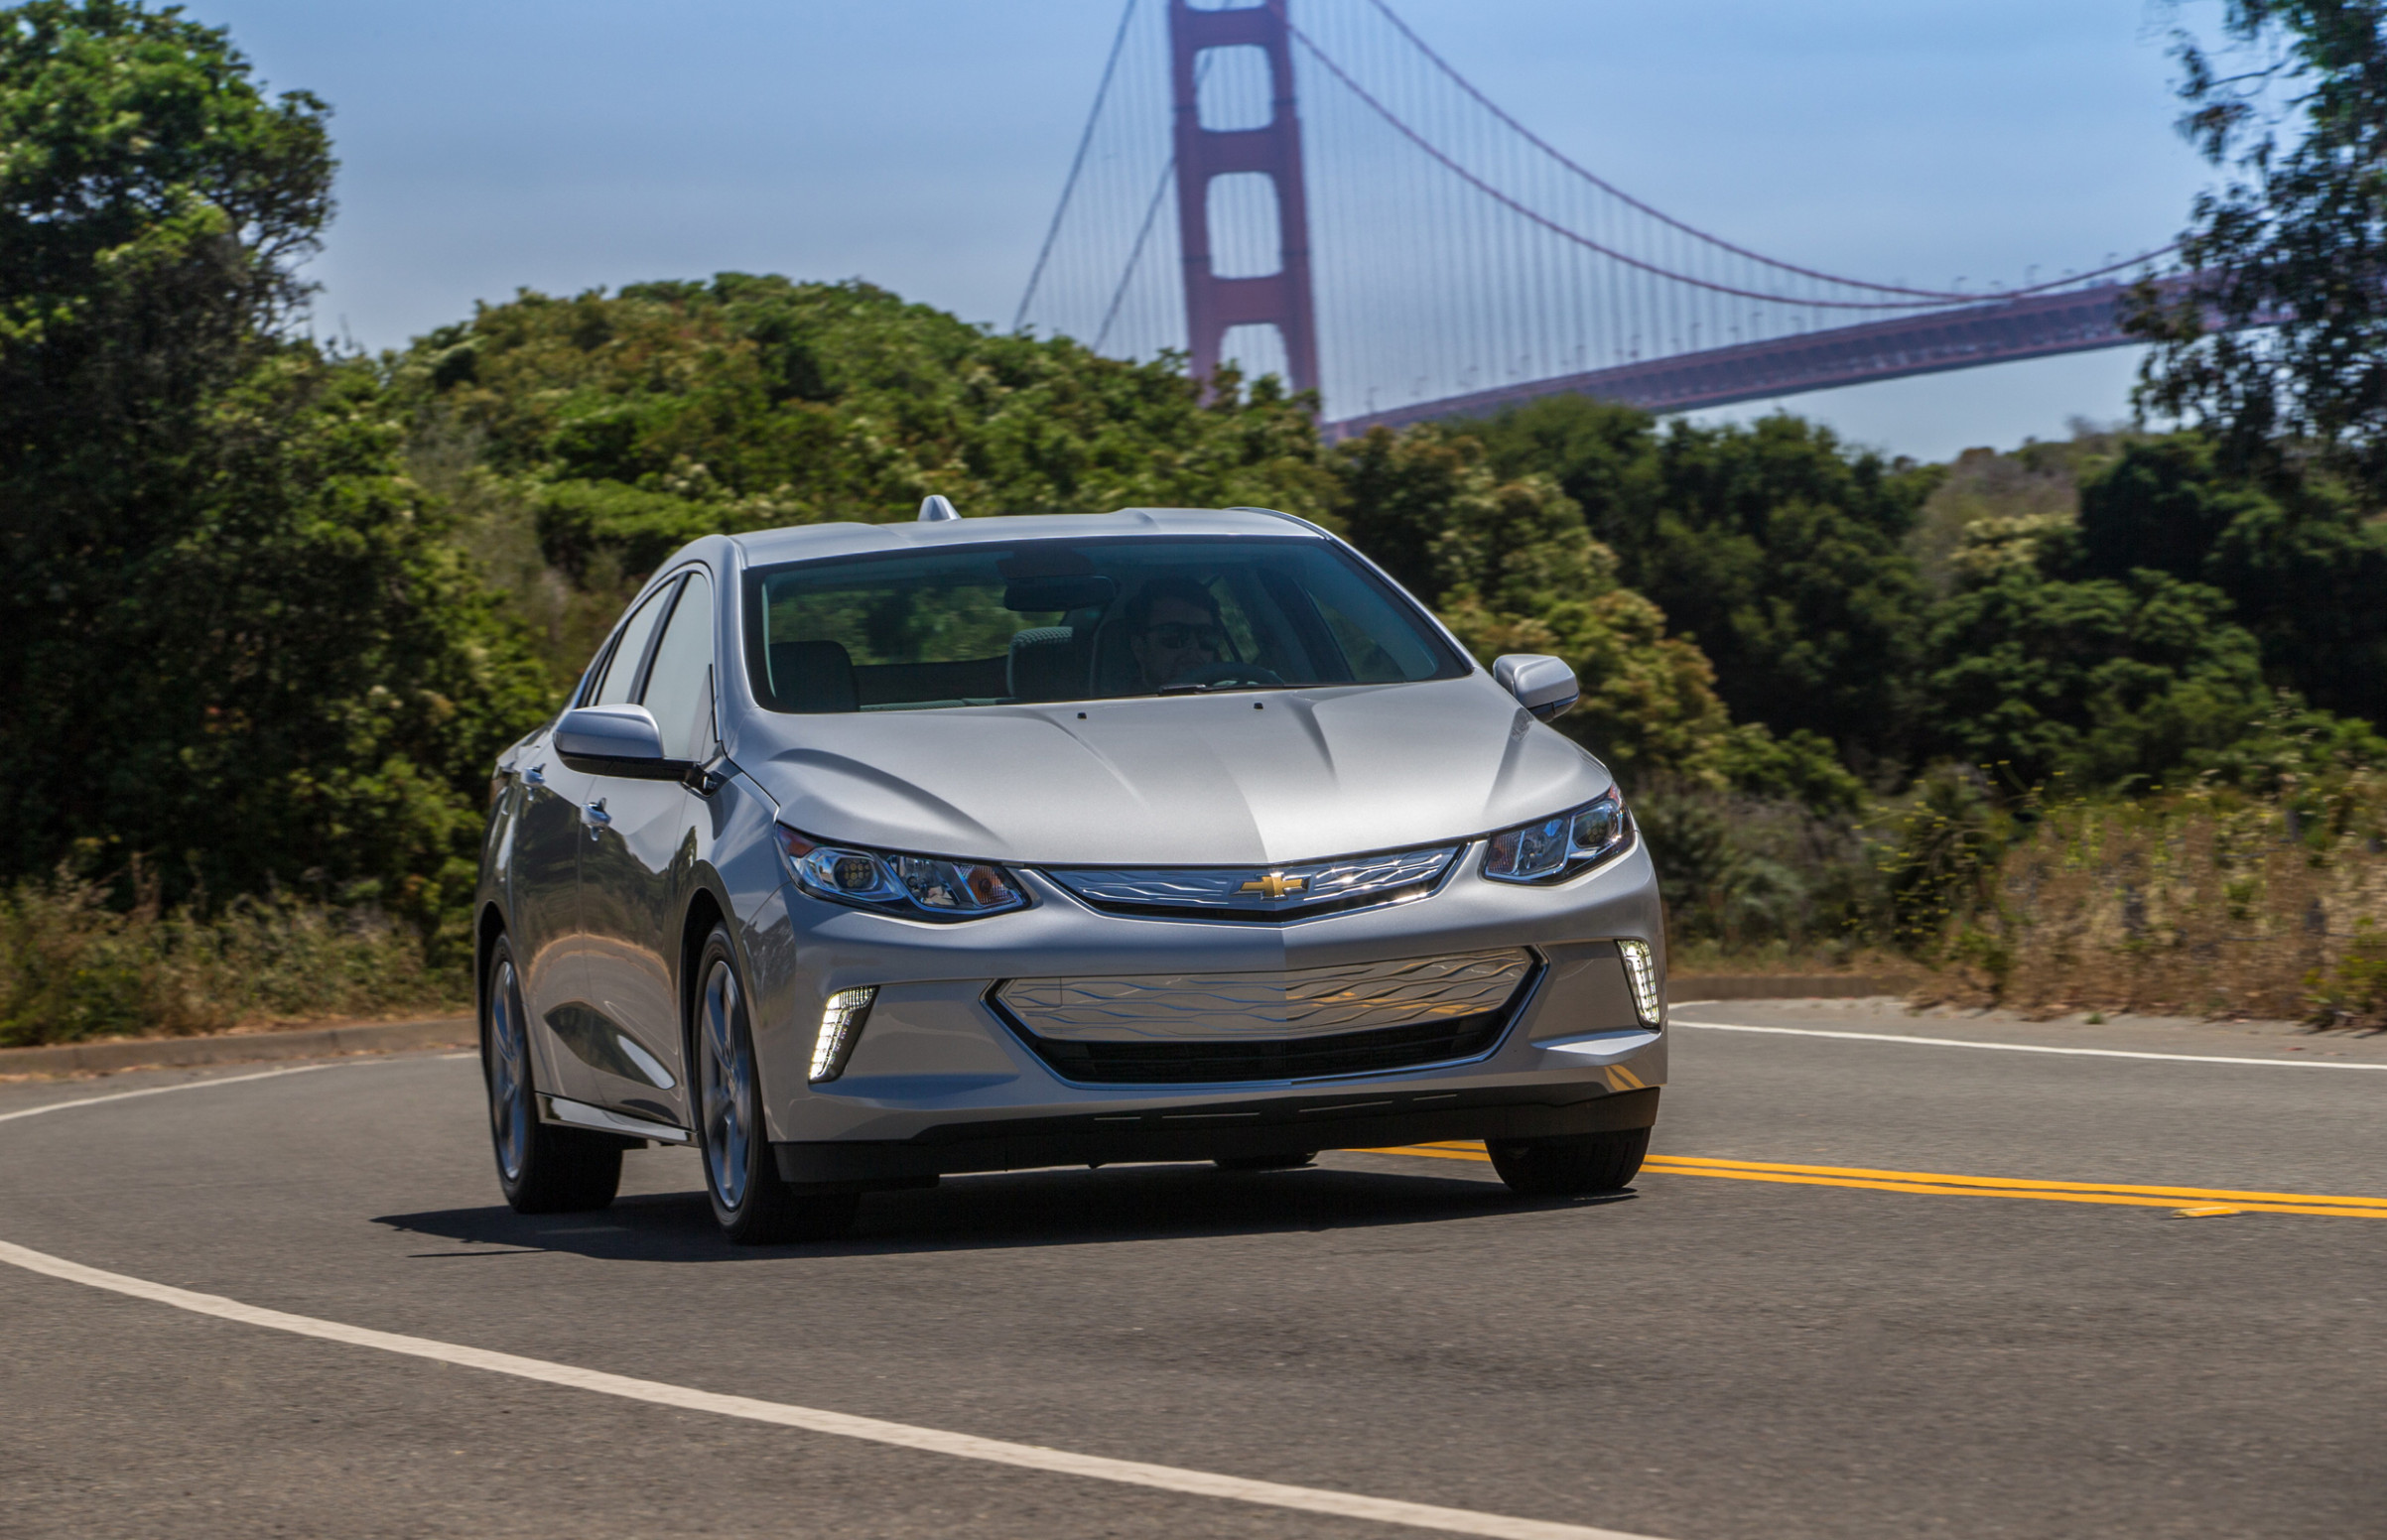 Chevrolet Volt 9 - View Specs, Prices, Photos & More | Driving